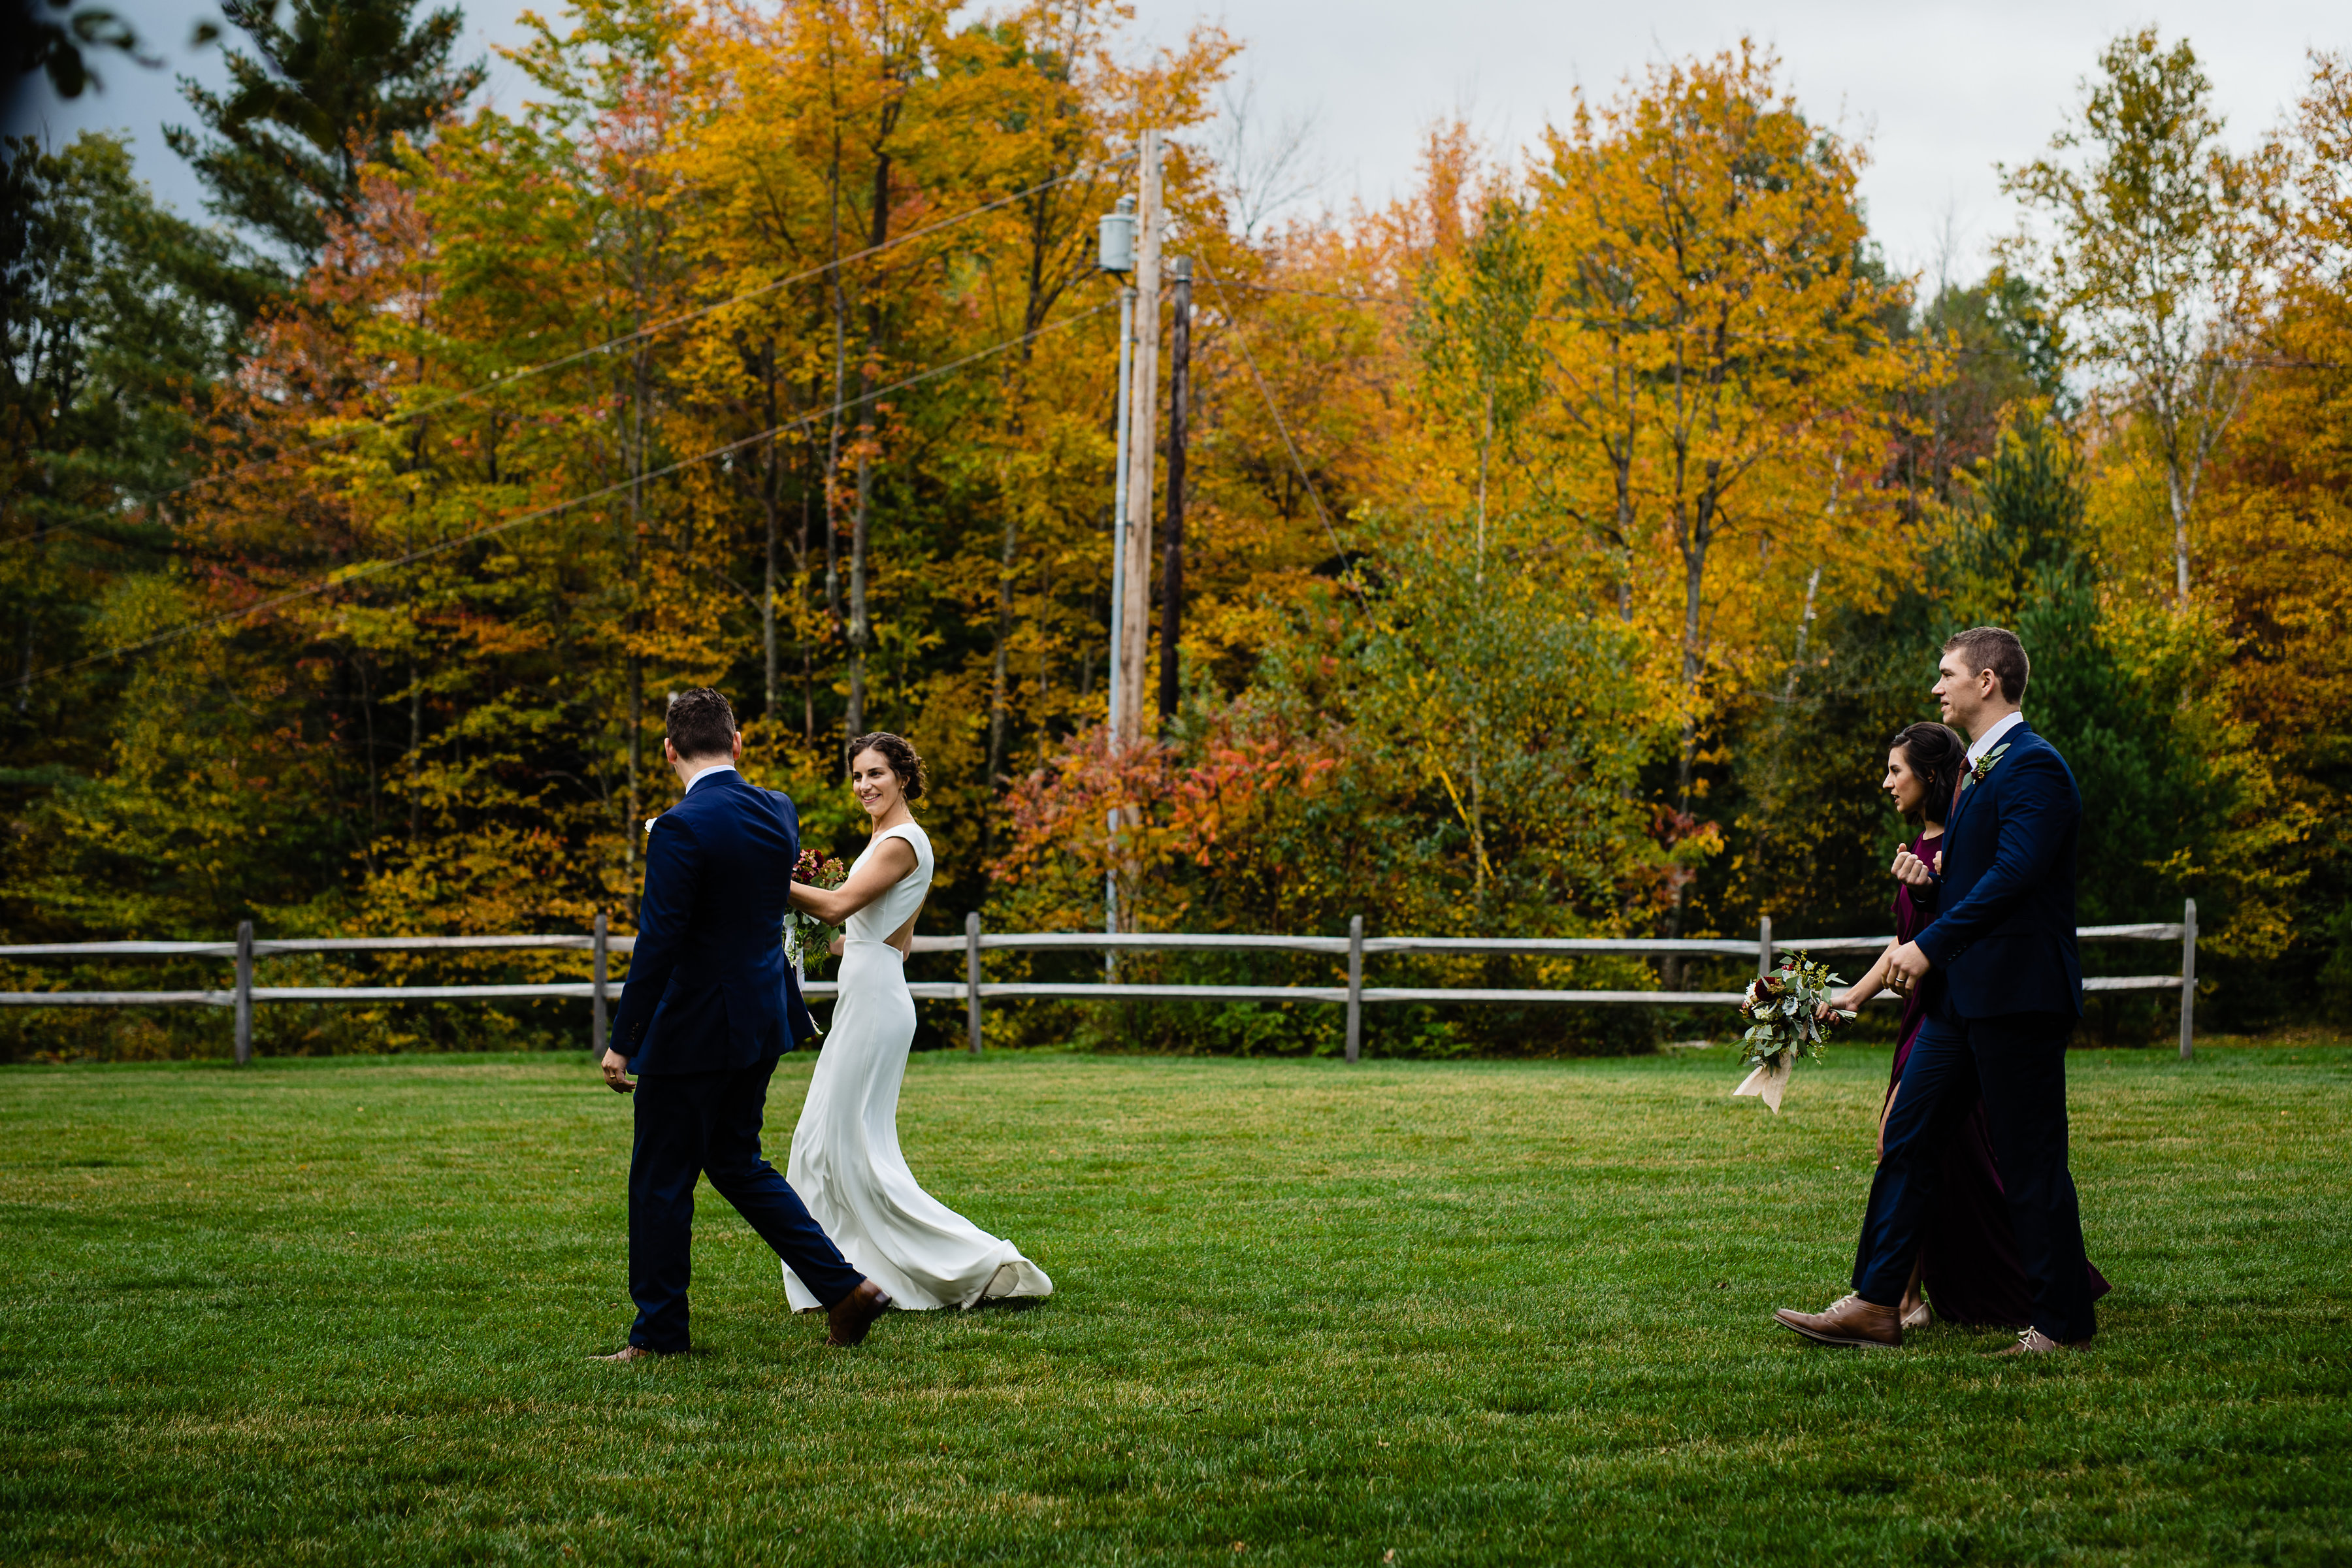 toddwilsonimages.elena.andrew.wedding.0486